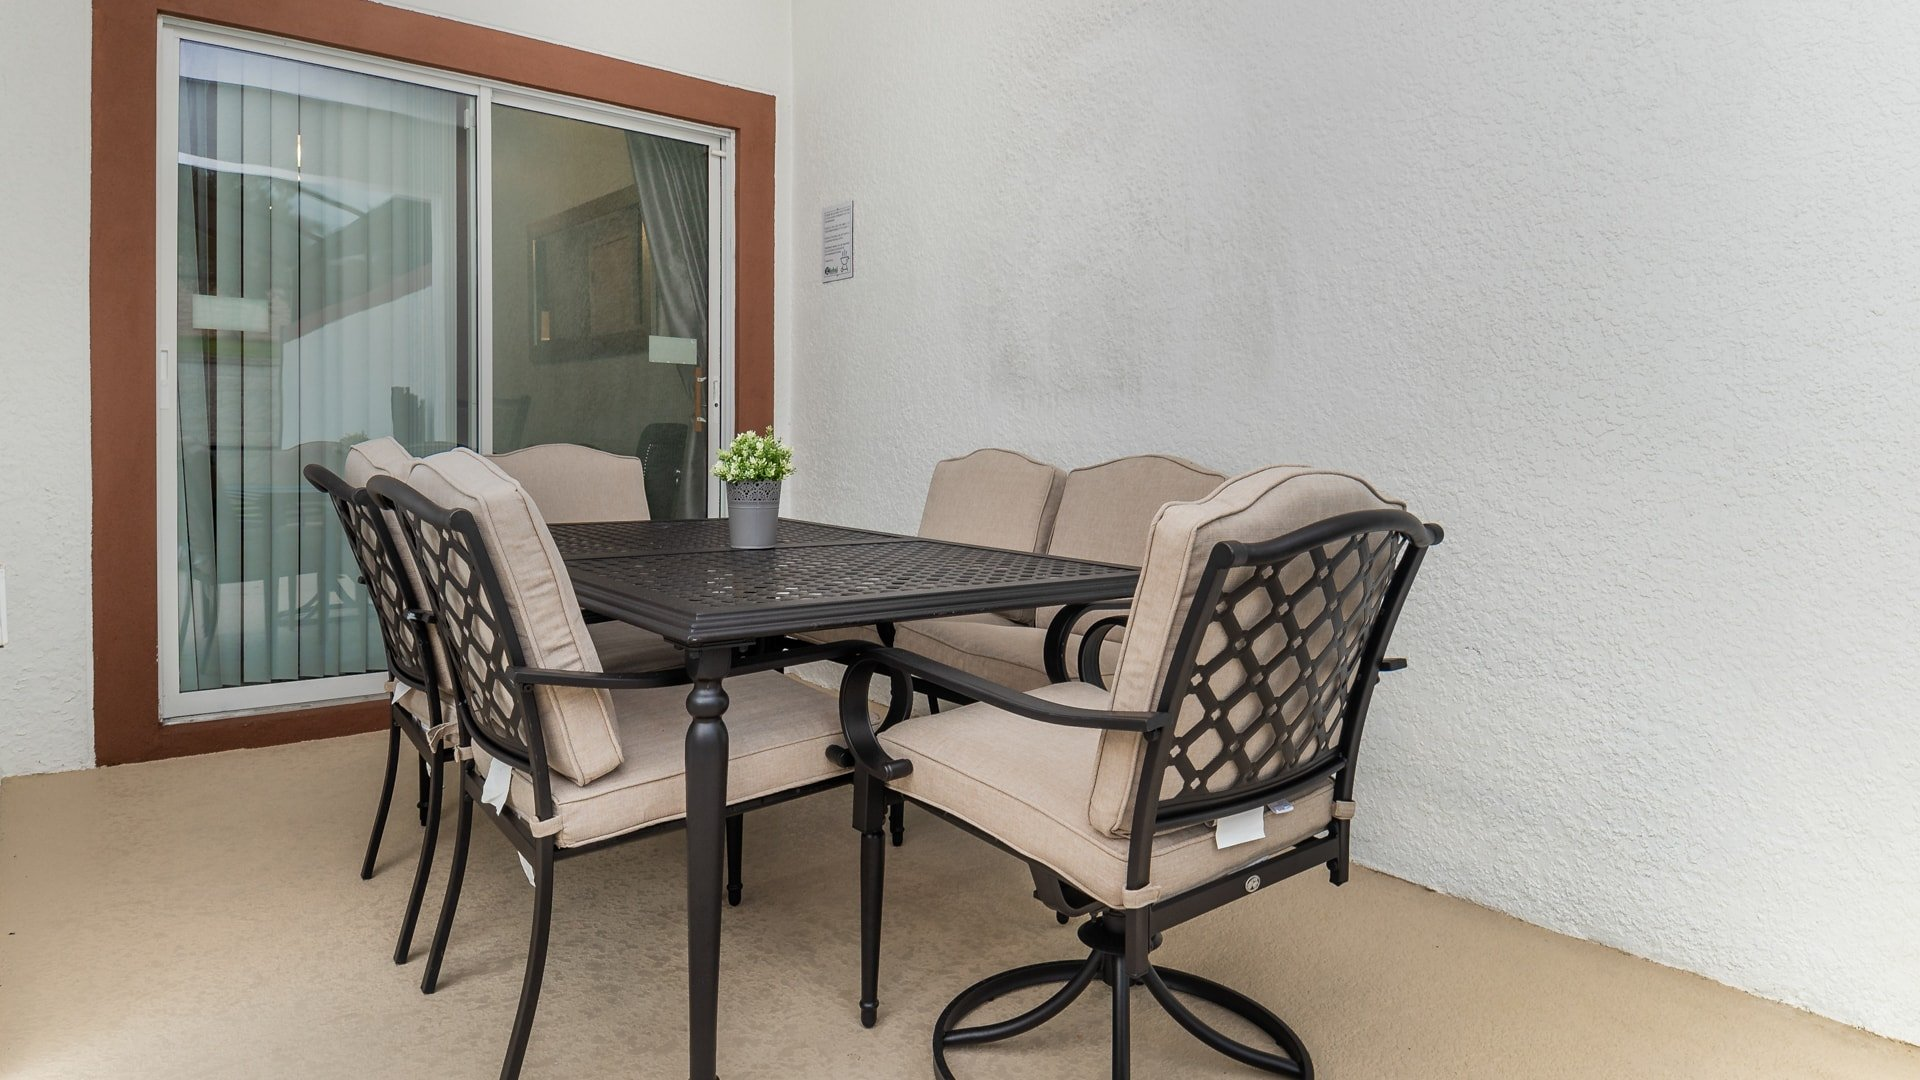 1562 Moon Valley Drive-210020